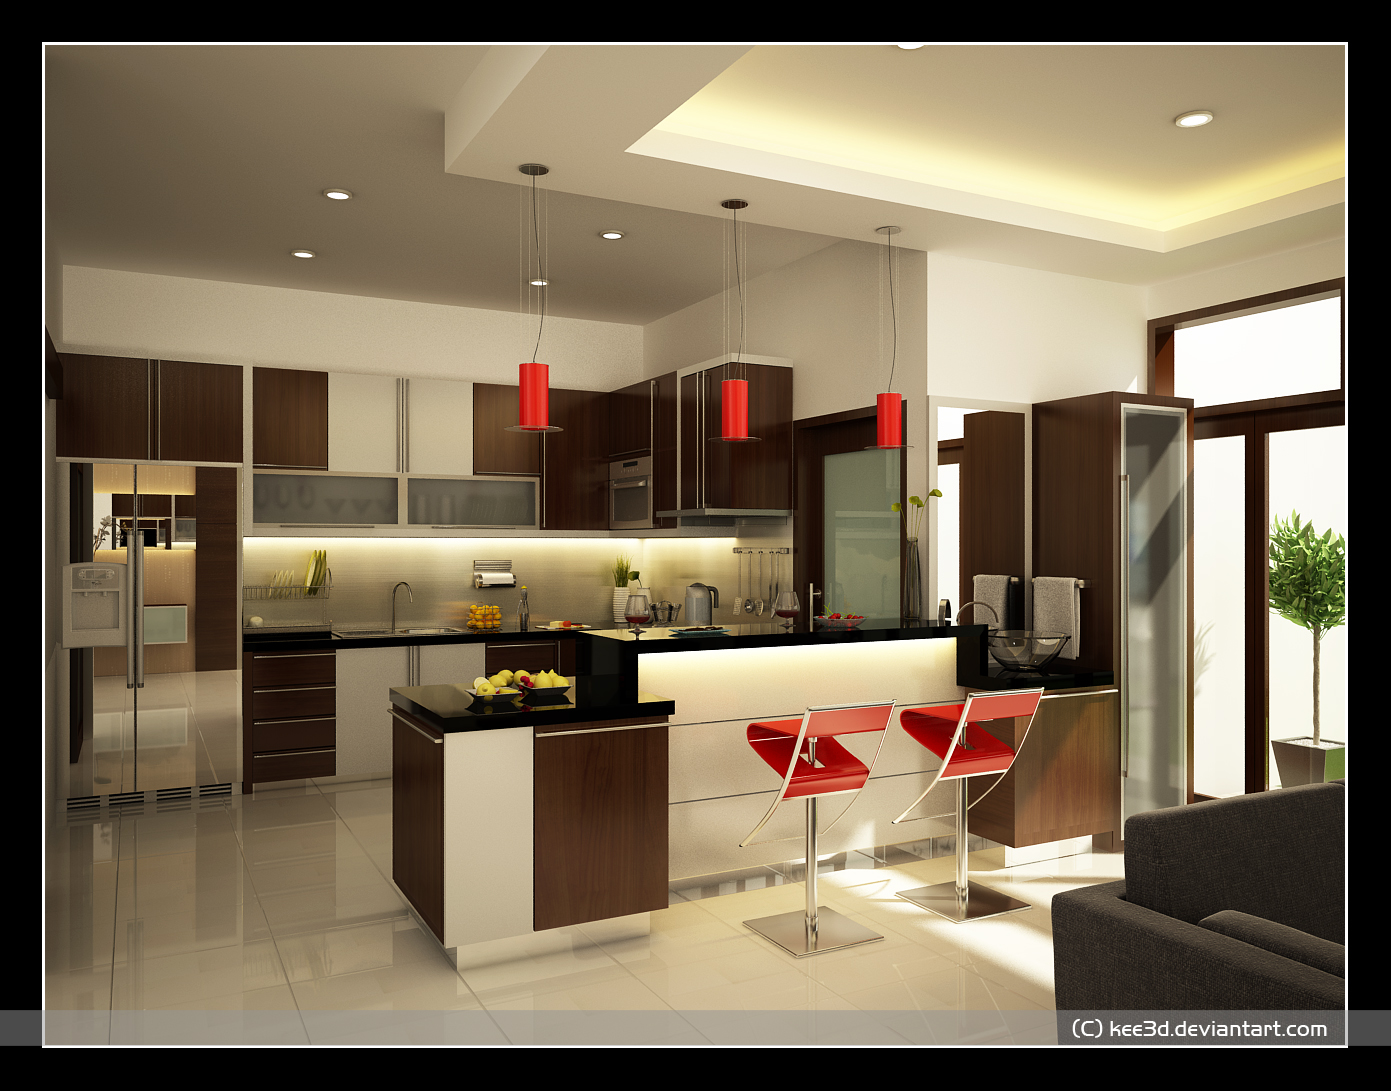 kitchen design ideas ForKitchen Ideas Pictures Designs